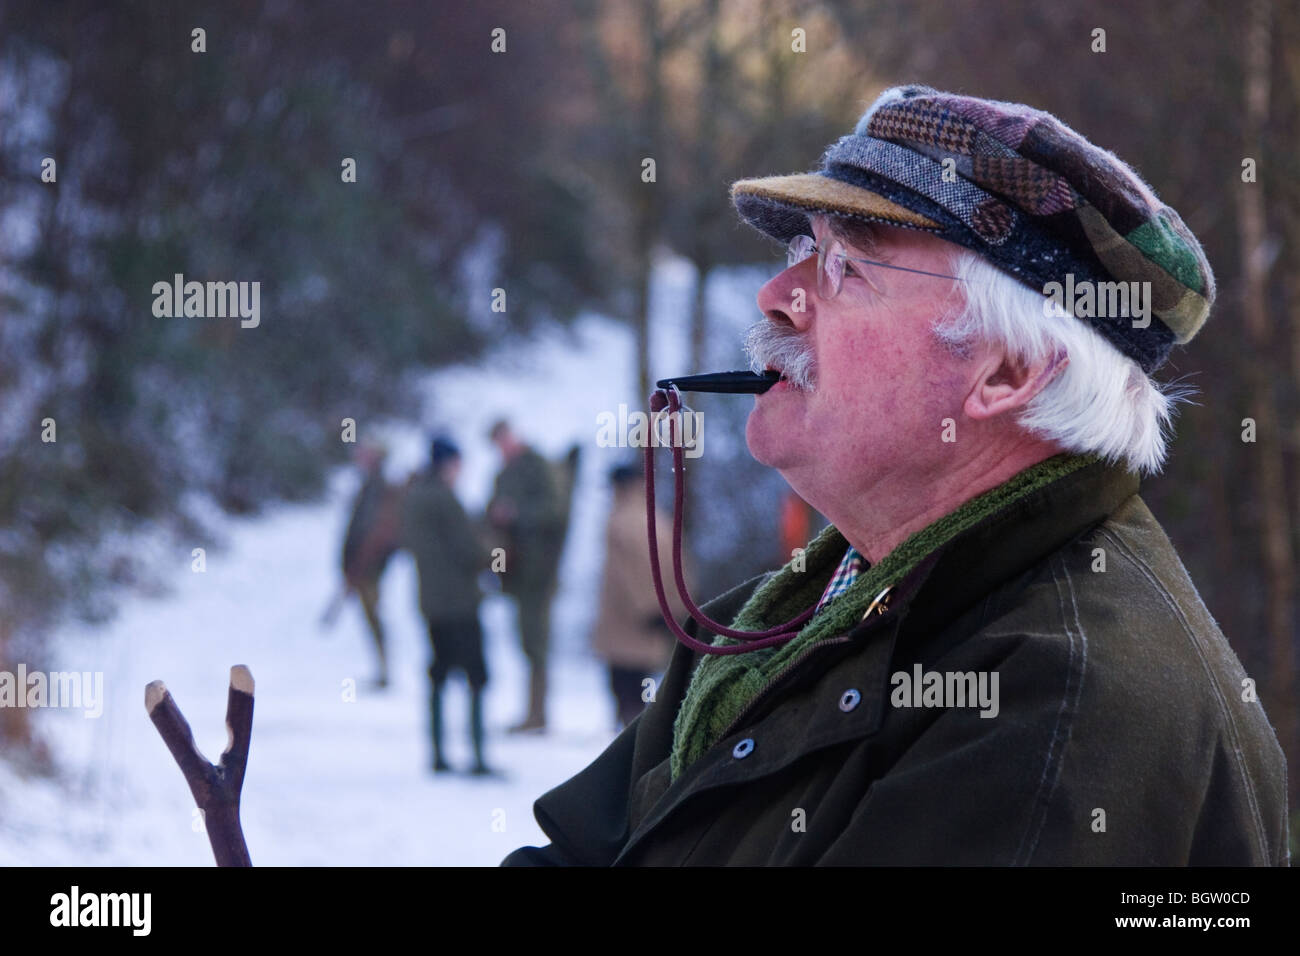 Gun dog trainer blowing his whistle to control his dog - Stock Image